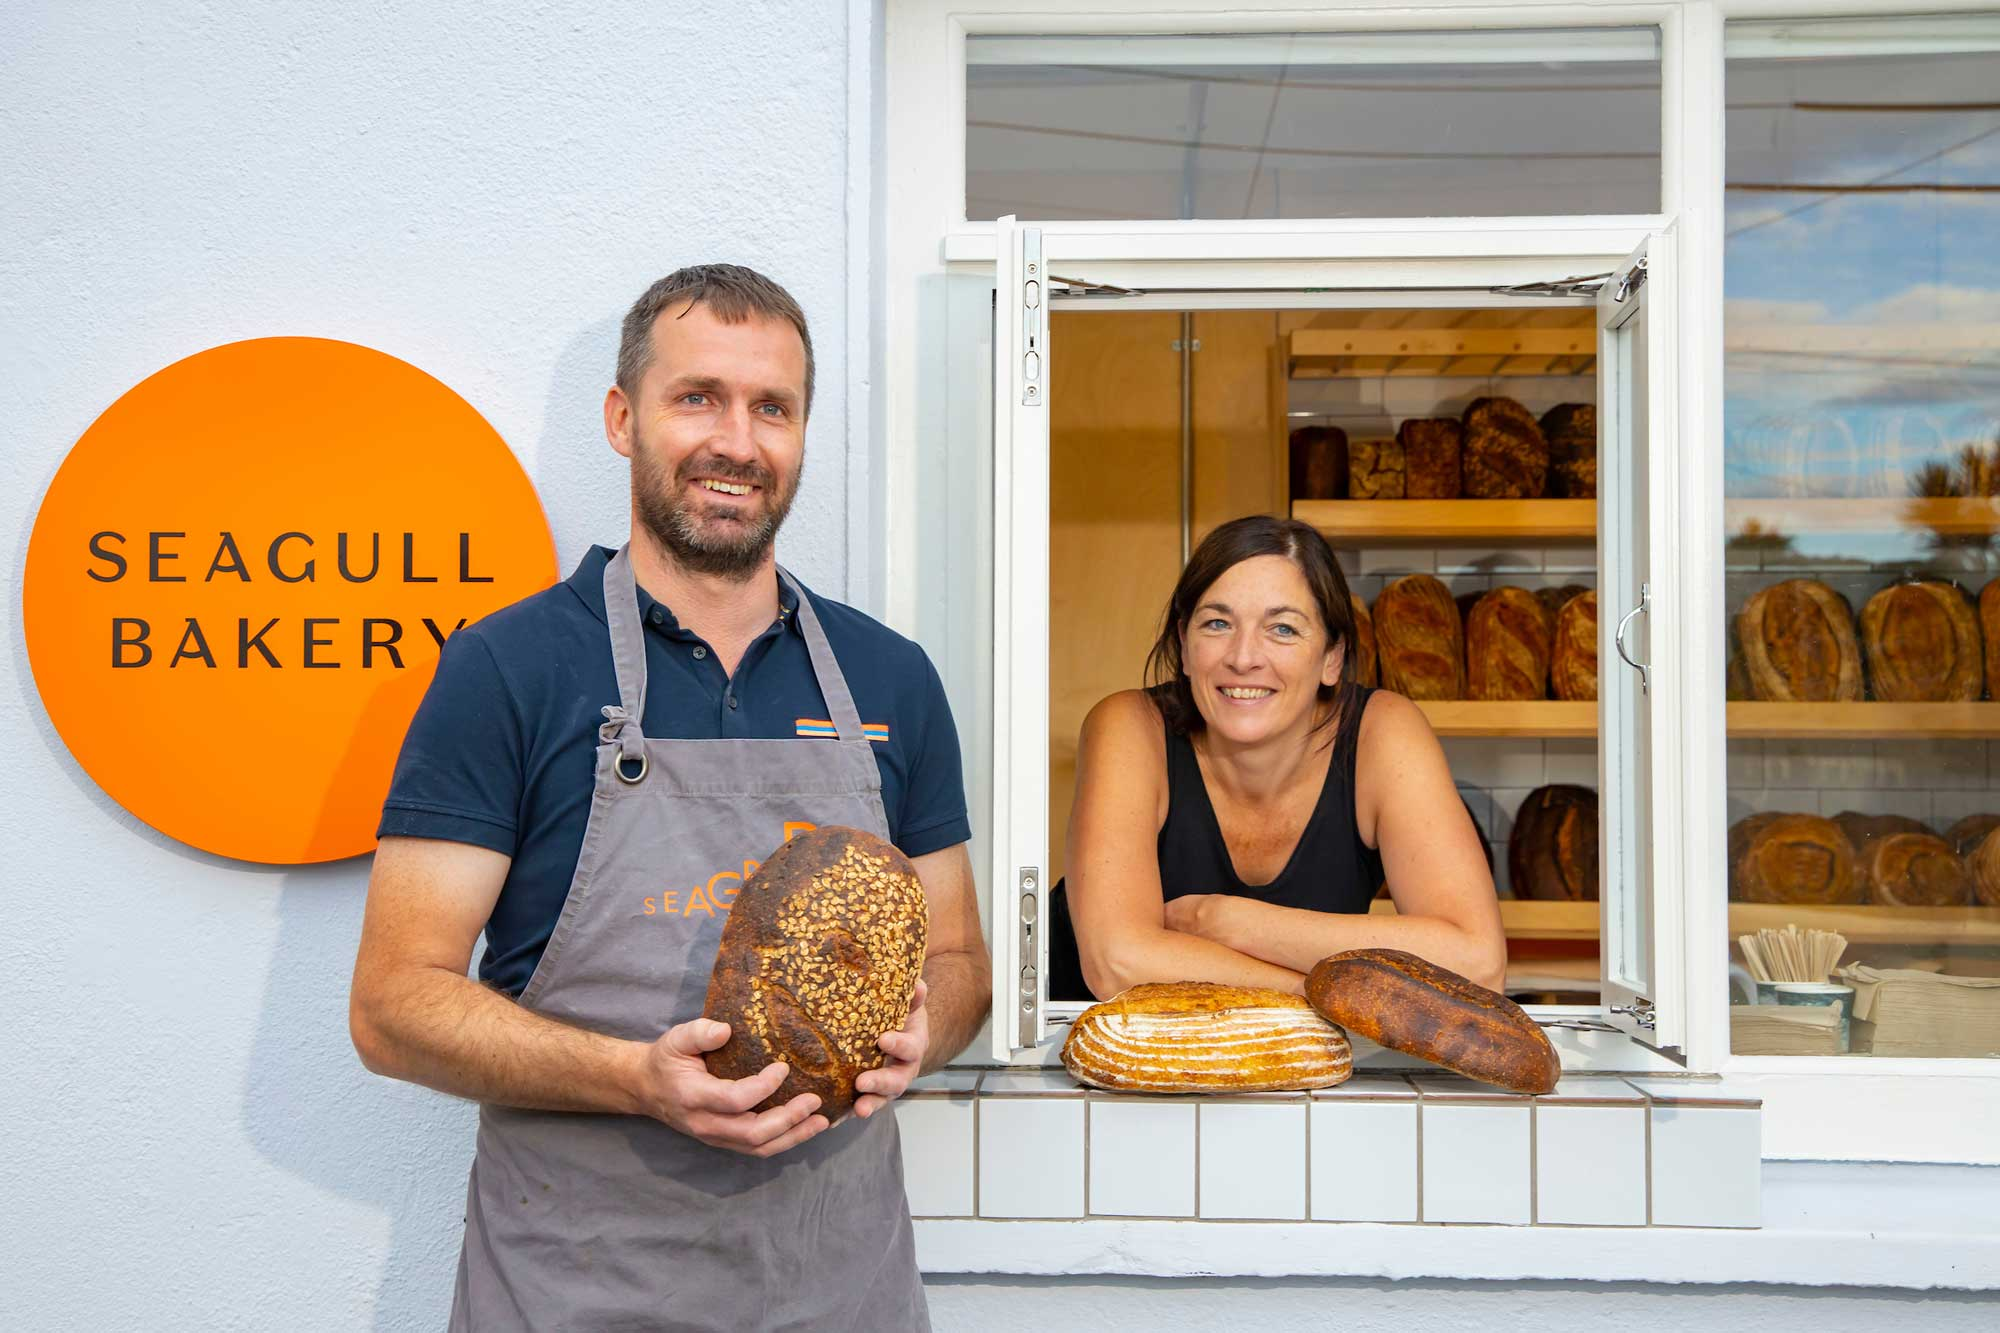 The Seagull Bakery